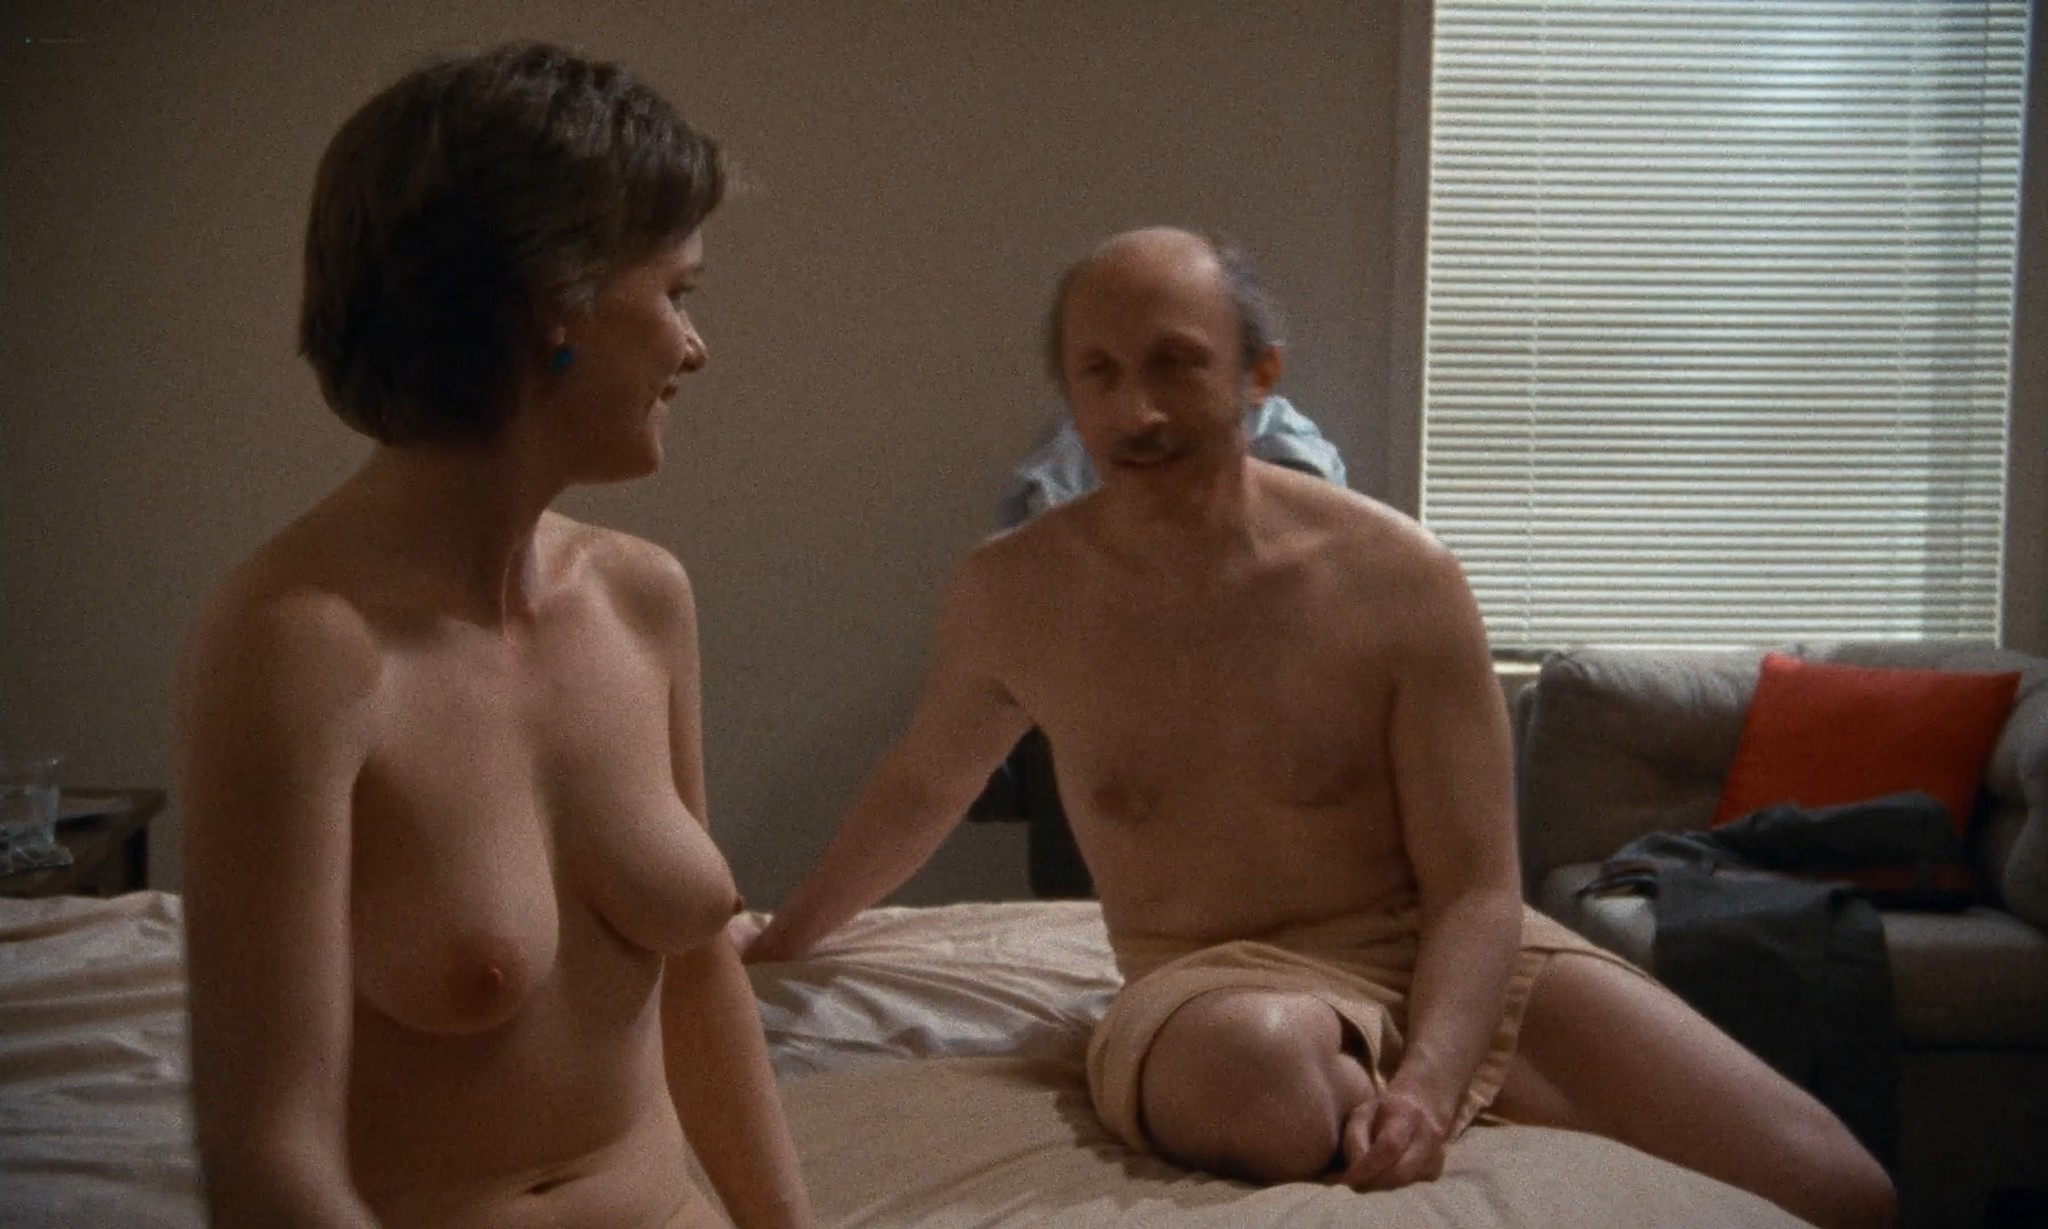 Helen Nicholas nude full frontal Louise Smith and others nude sex Working Girls 1986 1080p BluRay 2